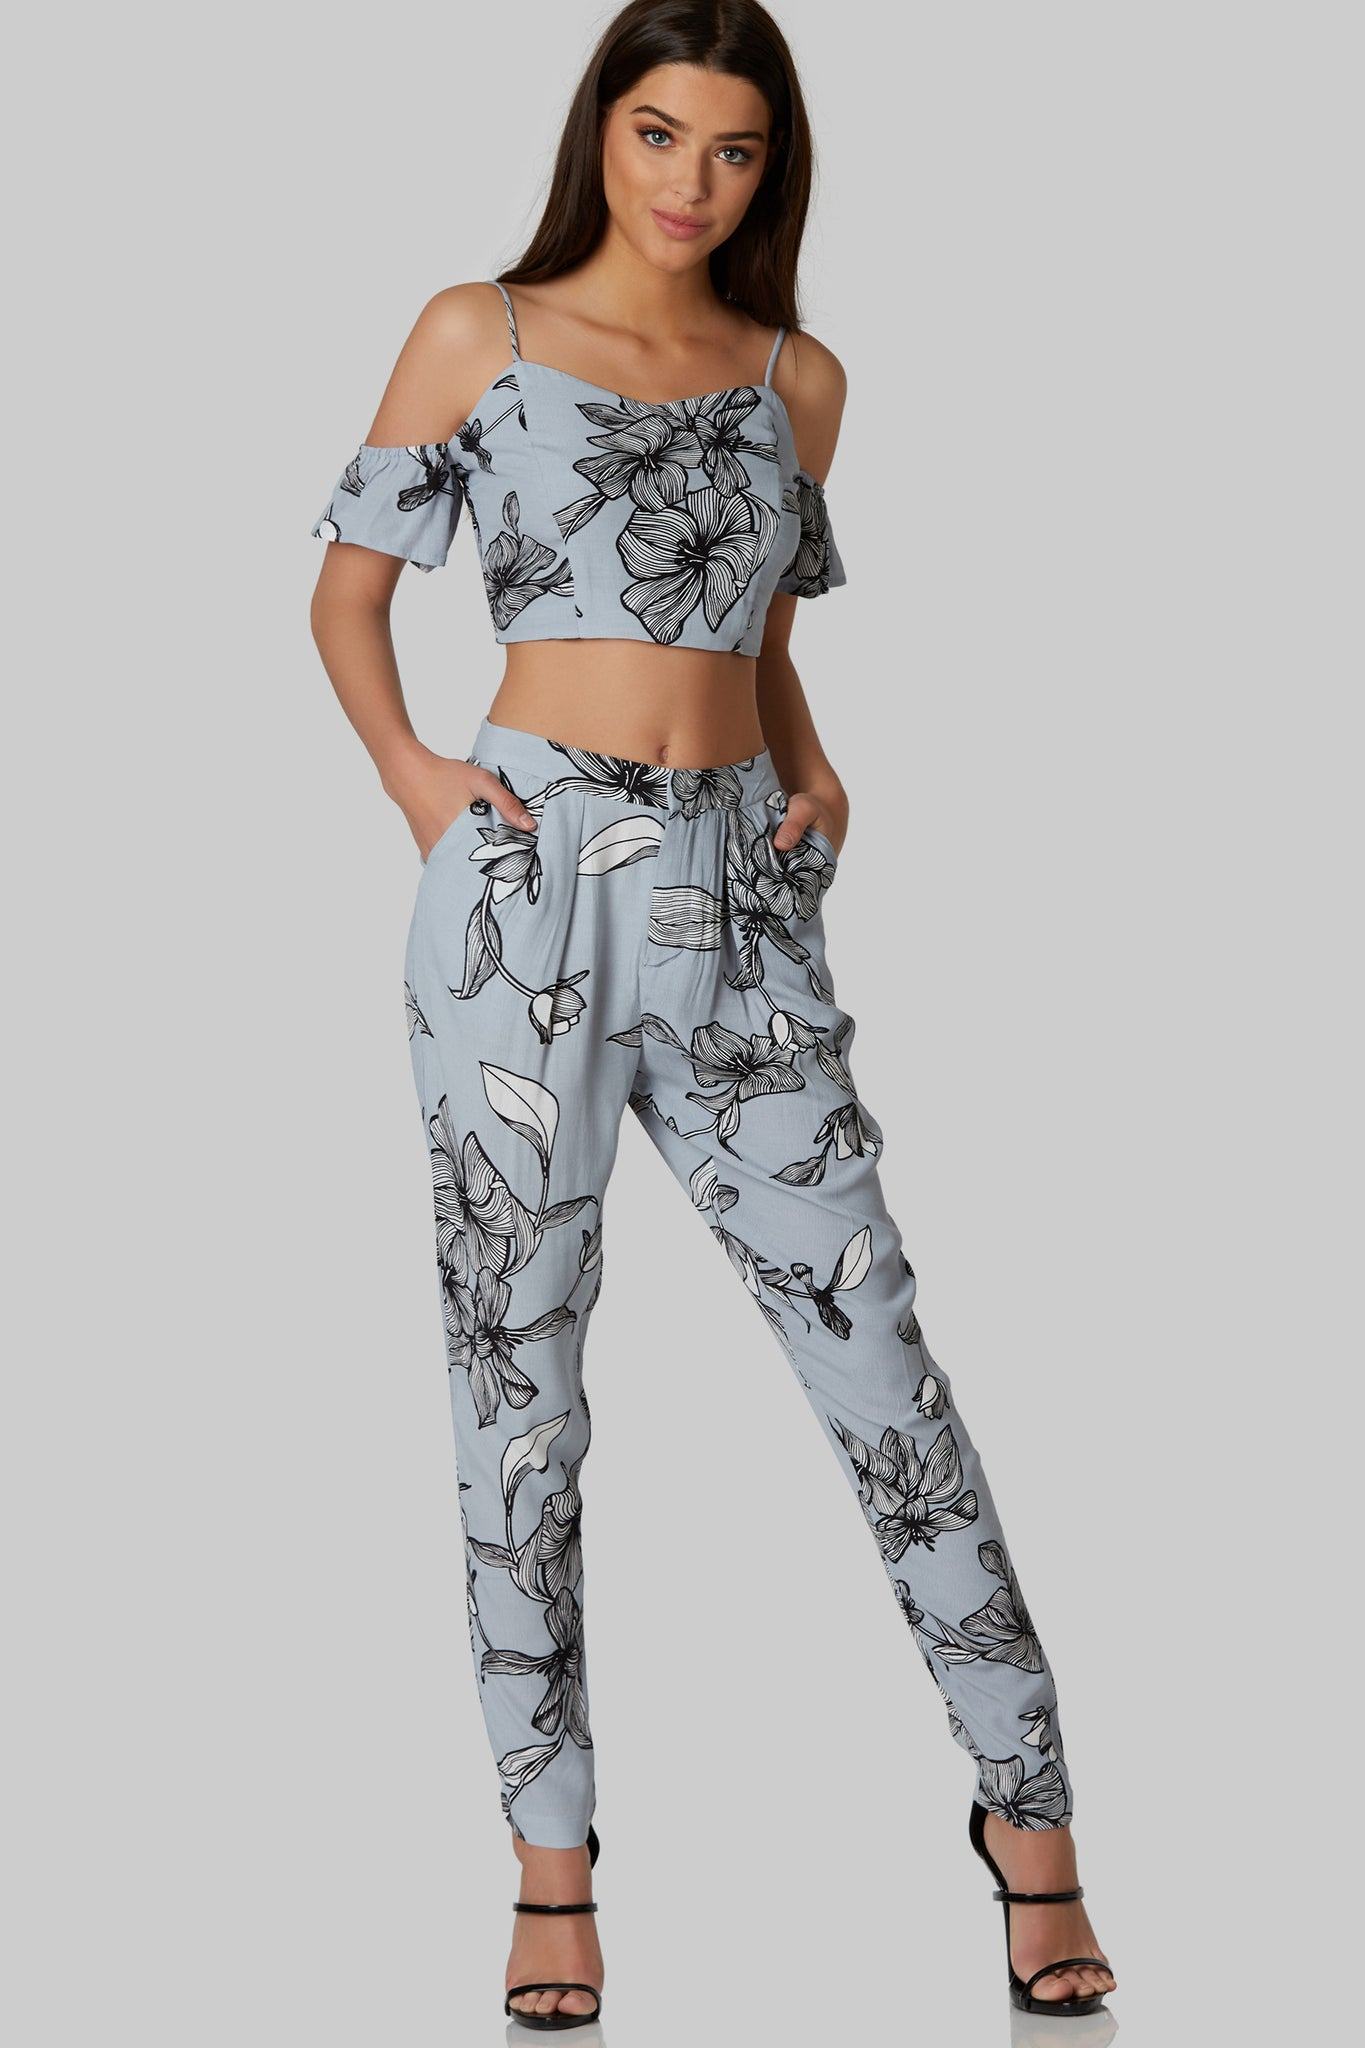 Chic cold shoulder crop top with floral patterns throughout. Fully lined with back zip closure. Comes in a set with matching bottoms sold separately.